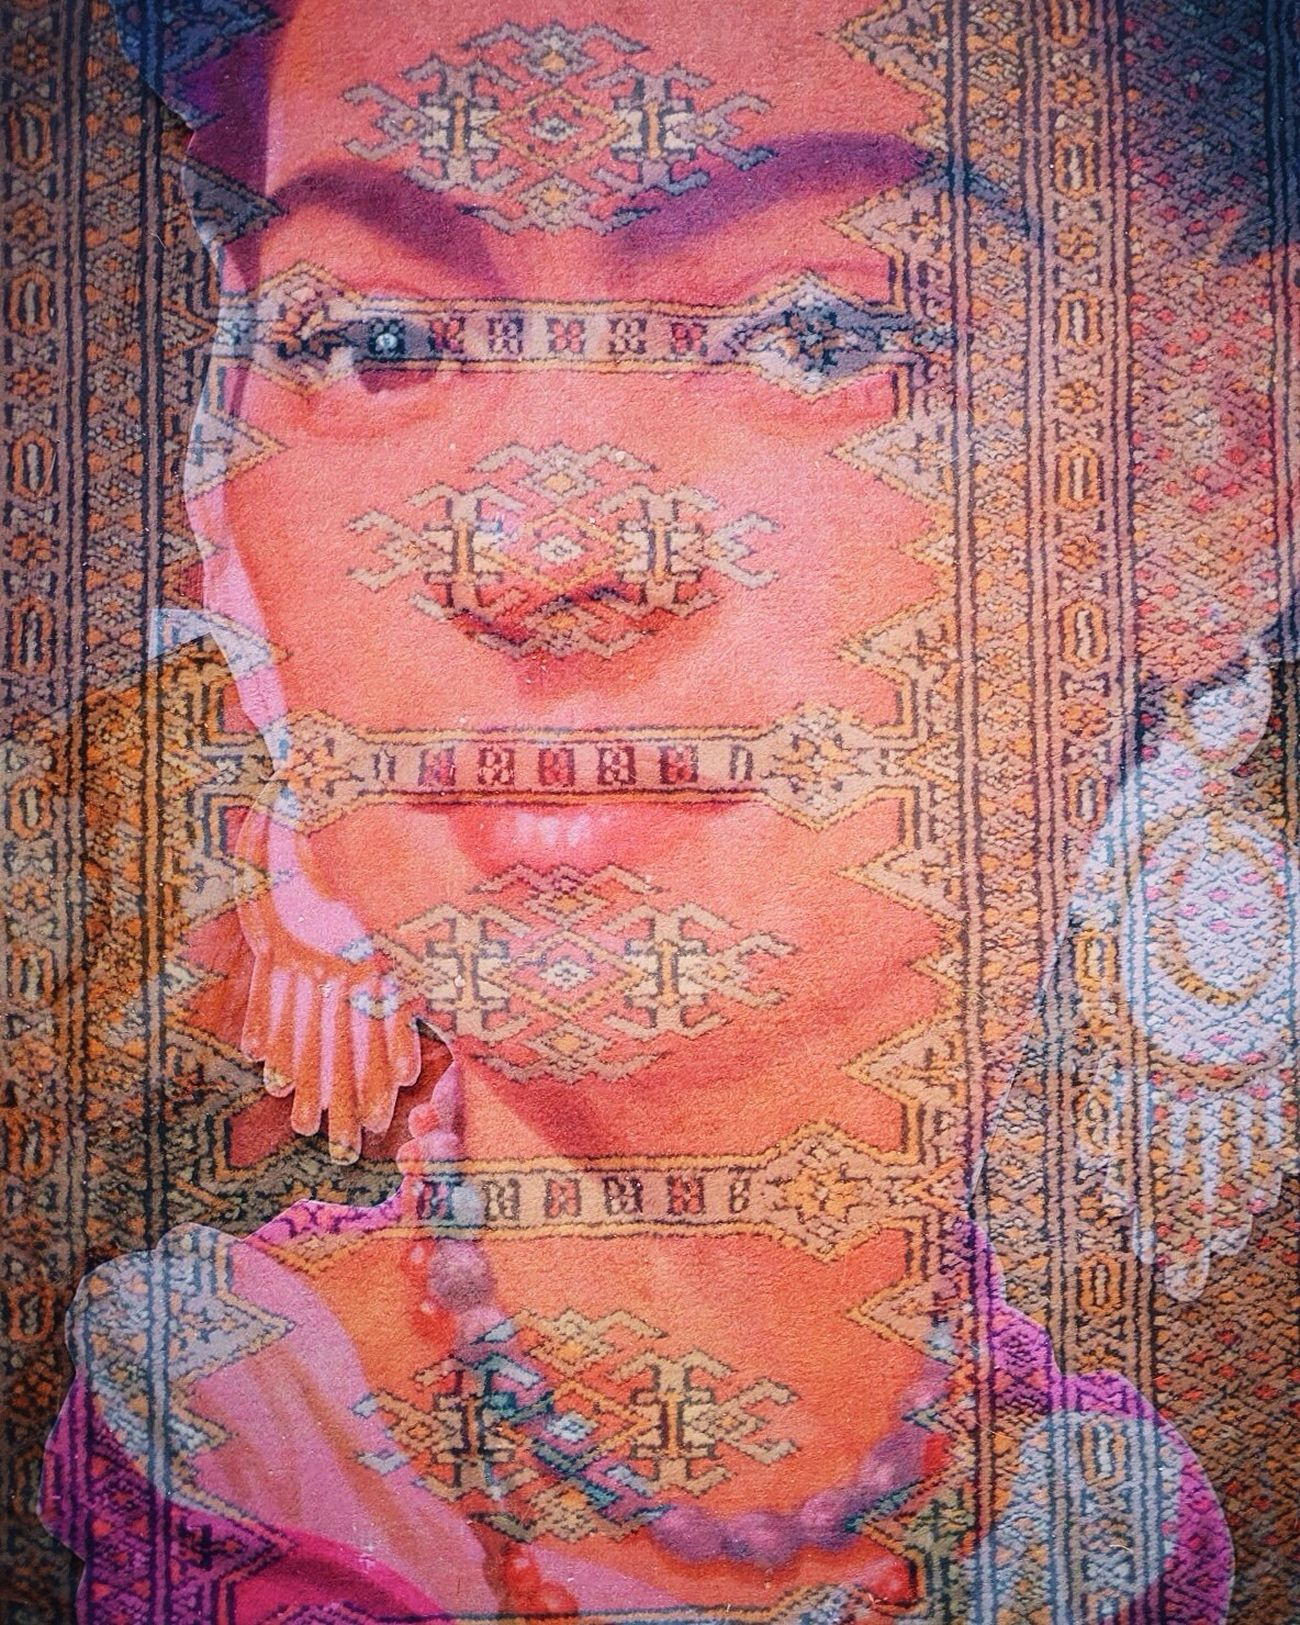 Frida & her third eye. I created this with my cameras multiple exposure feature. It's a large cut out of her & an antique carpet from a gallery in San Miguel. I love how much she is honored in Mexico. Currently en route to Mexico City. We're staying just down the street from Frida & Diego's old home in Coyoacán & feeling ready to explore the city!!! Travel Culture Check This Out Textures And Surfaces Art Portrait Double Exposure EyeEm Gallery Traveling Street Photography Eye4photography  Eyem Best Edits